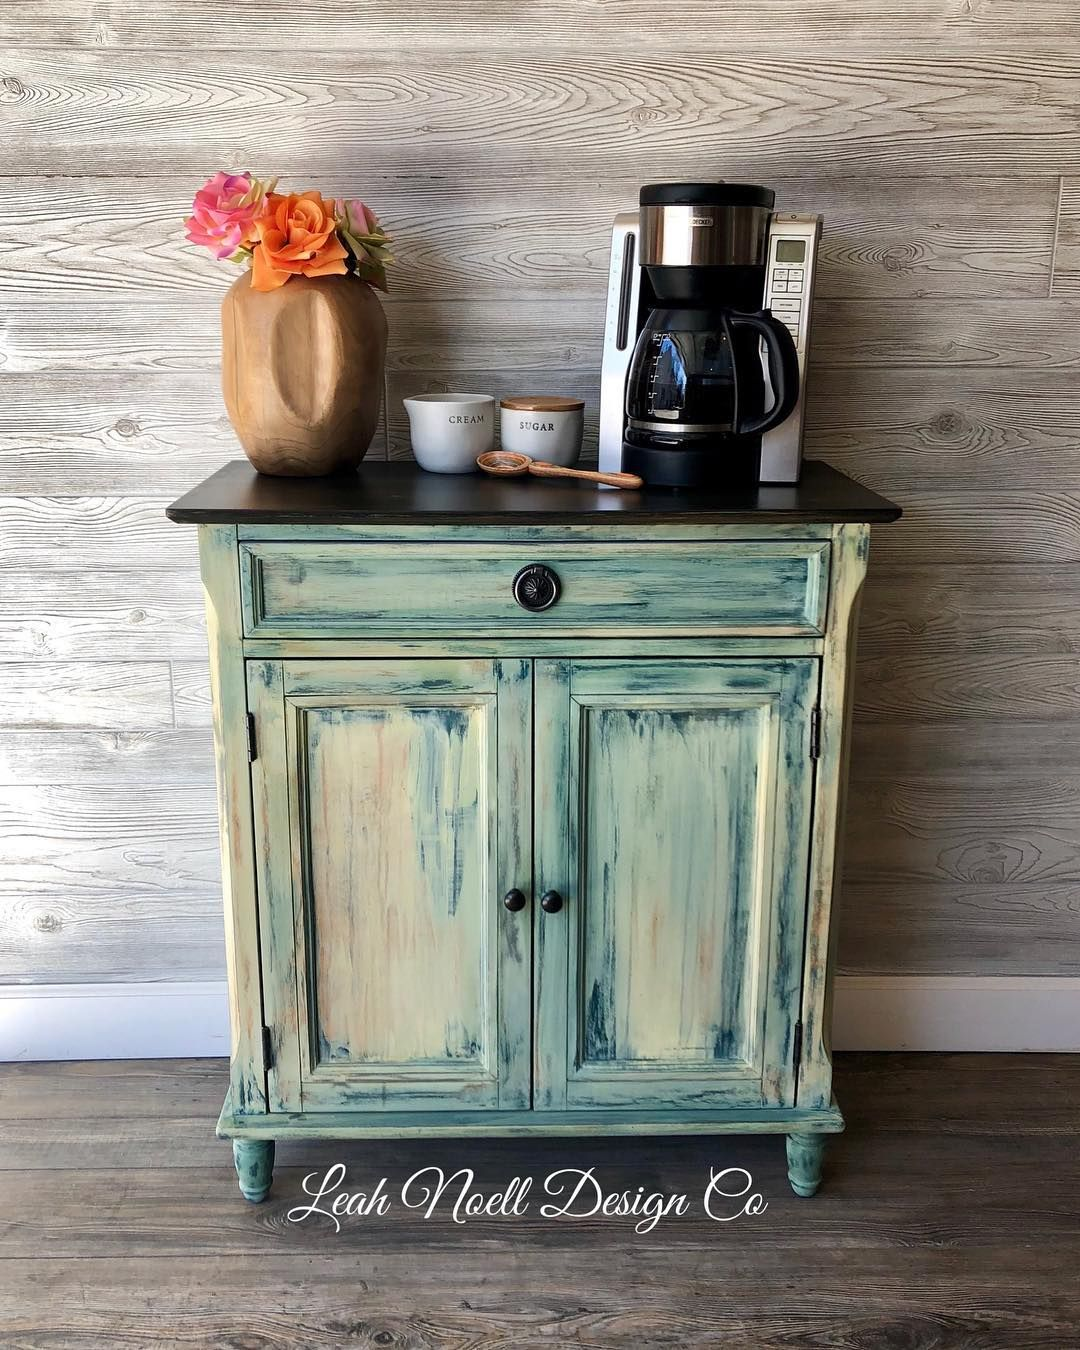 Isn't this custom coffee bar adorable? It's so fun when a client wants some COLOR!! I used Debi's design diary paints in Honey bee, bohemian blue, and Sumer crush for the win!! #debisdesigndiary #dothedionne #colormovement #ispruceditup #bohemain